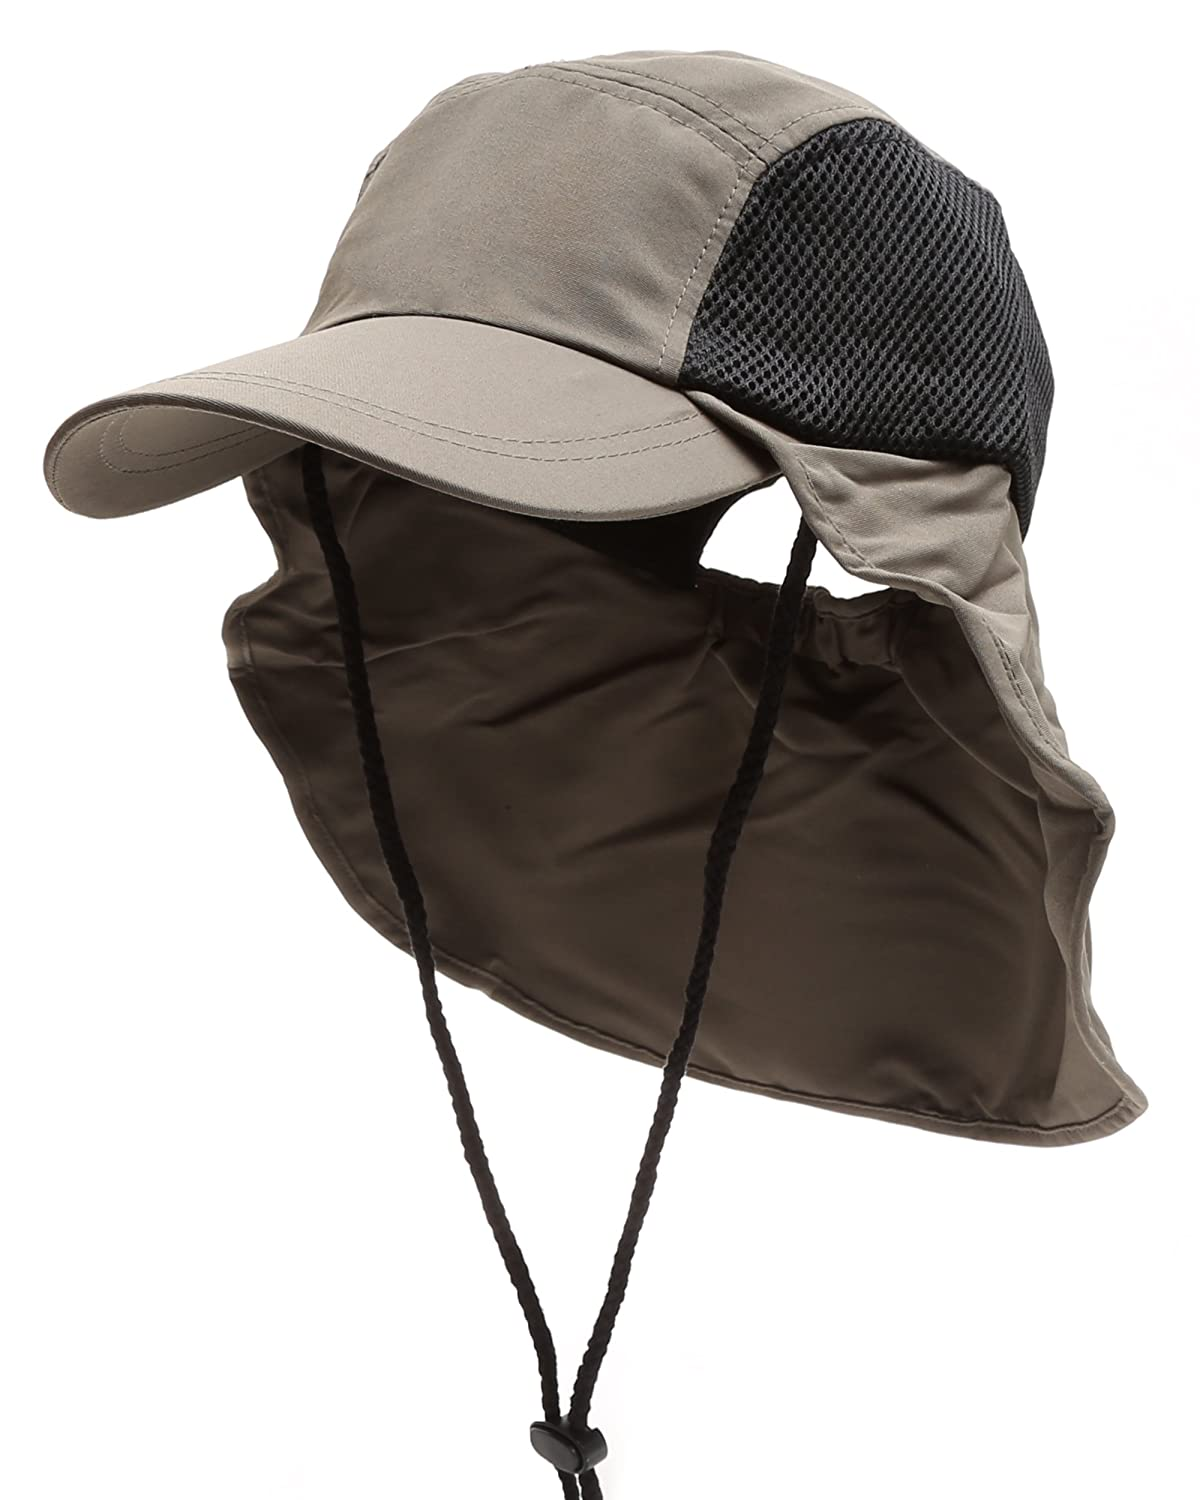 MIRMARU Summer Outdoor UPF Protection Safari Sun Hat with Neck Flap and Chin Strap MM-NH-1536-BLACK